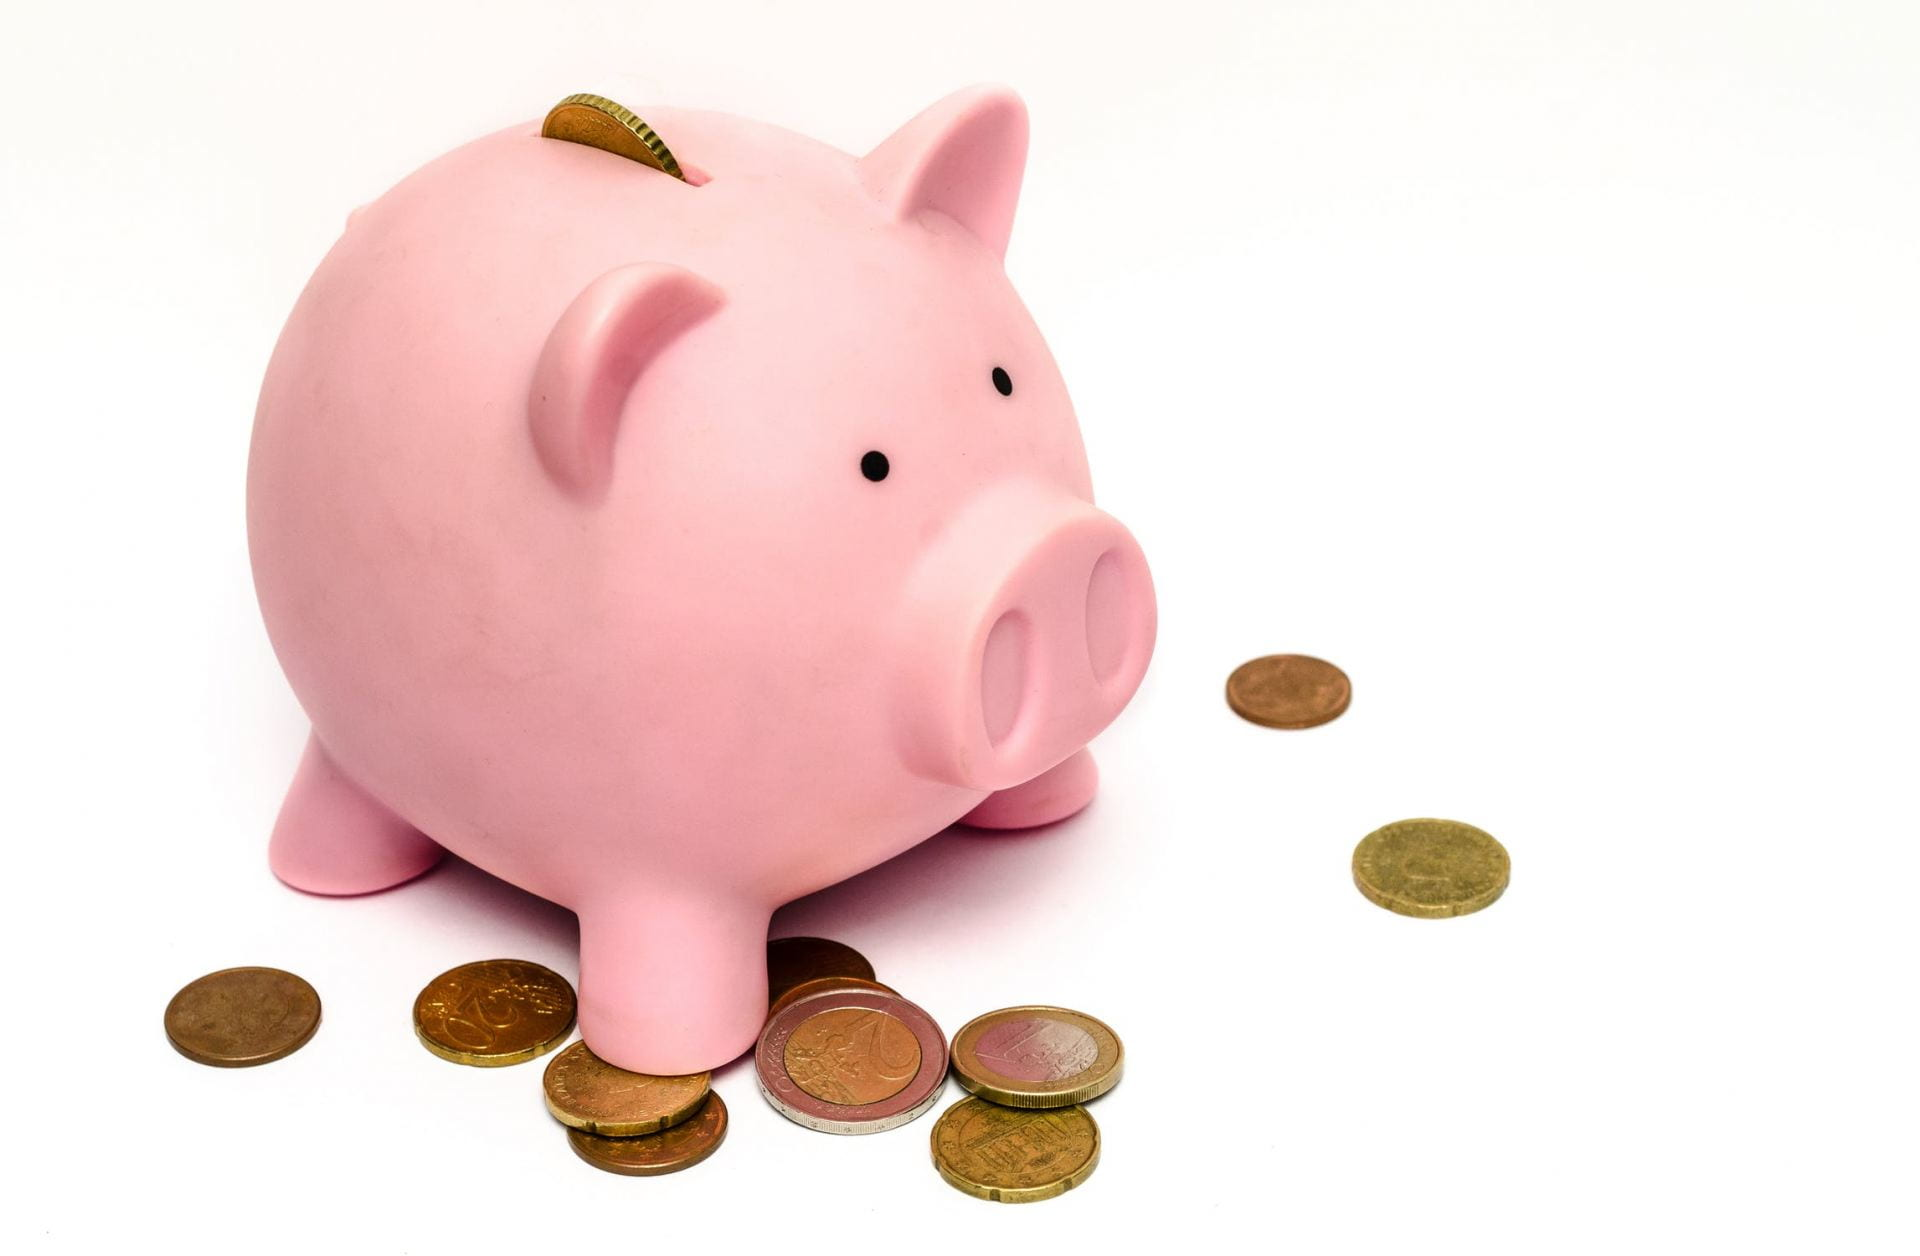 A pink piggy bank. A coin is poking out the top. There are more coins surrounding the piggy bank.